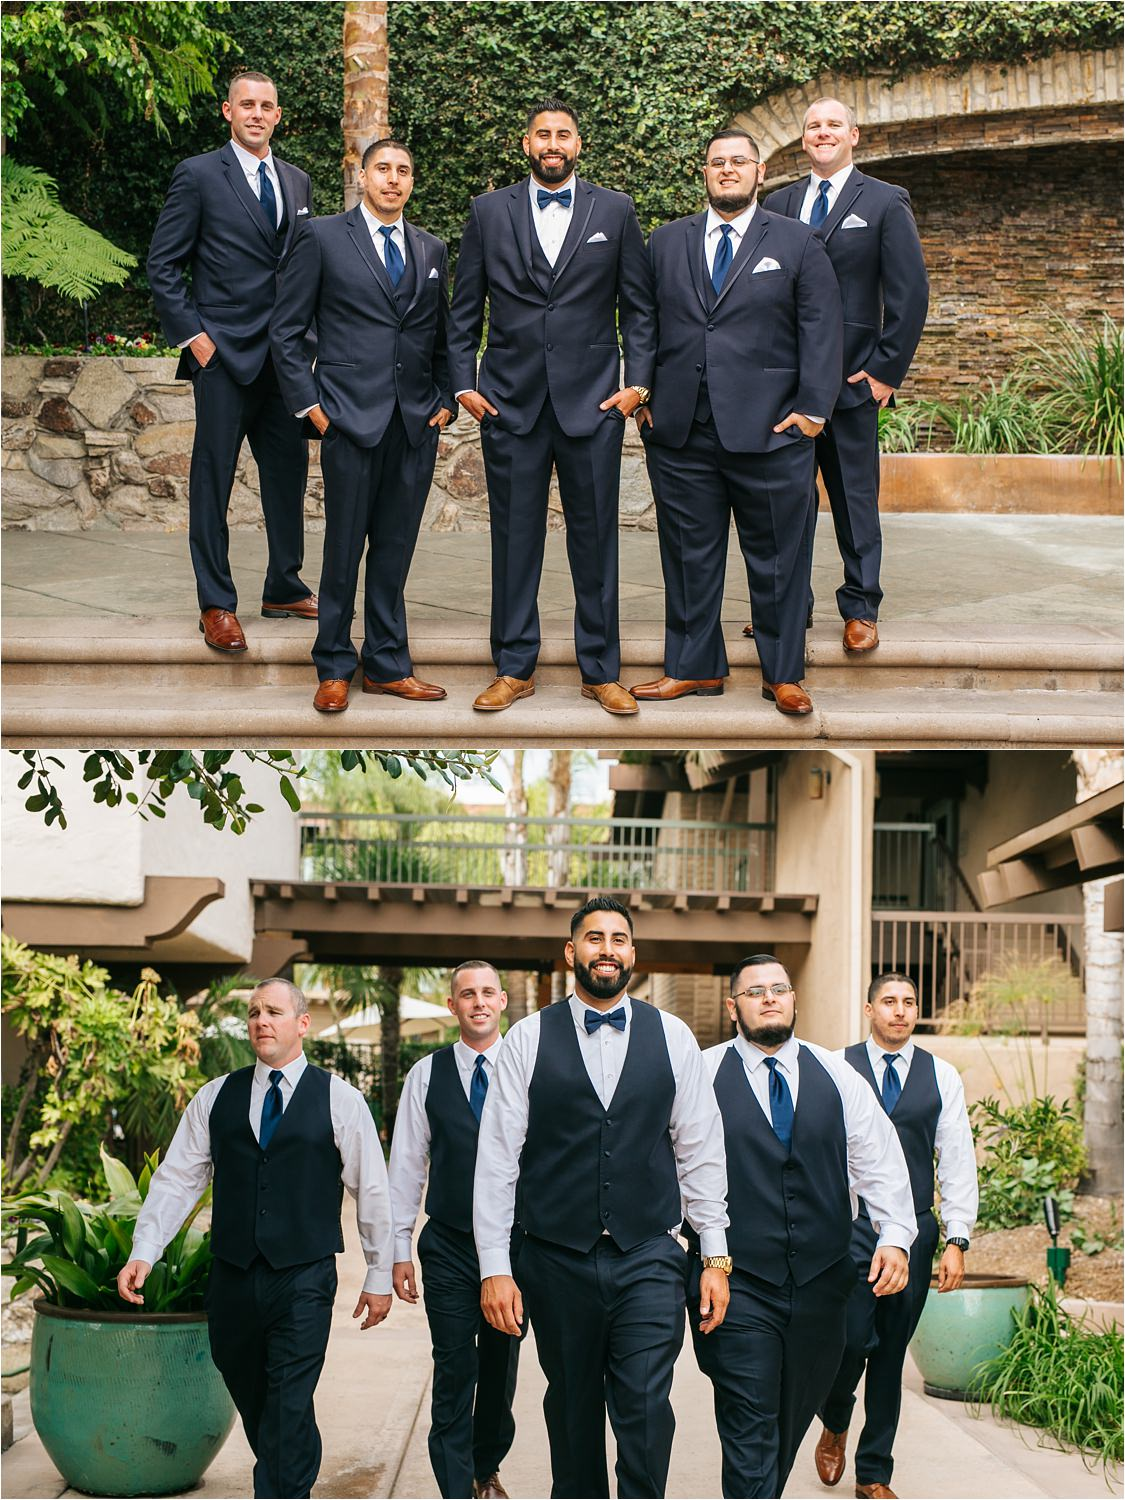 Groom & Groomsmen Photos in Claremont, CA - http://brittneyhannonphotography.com